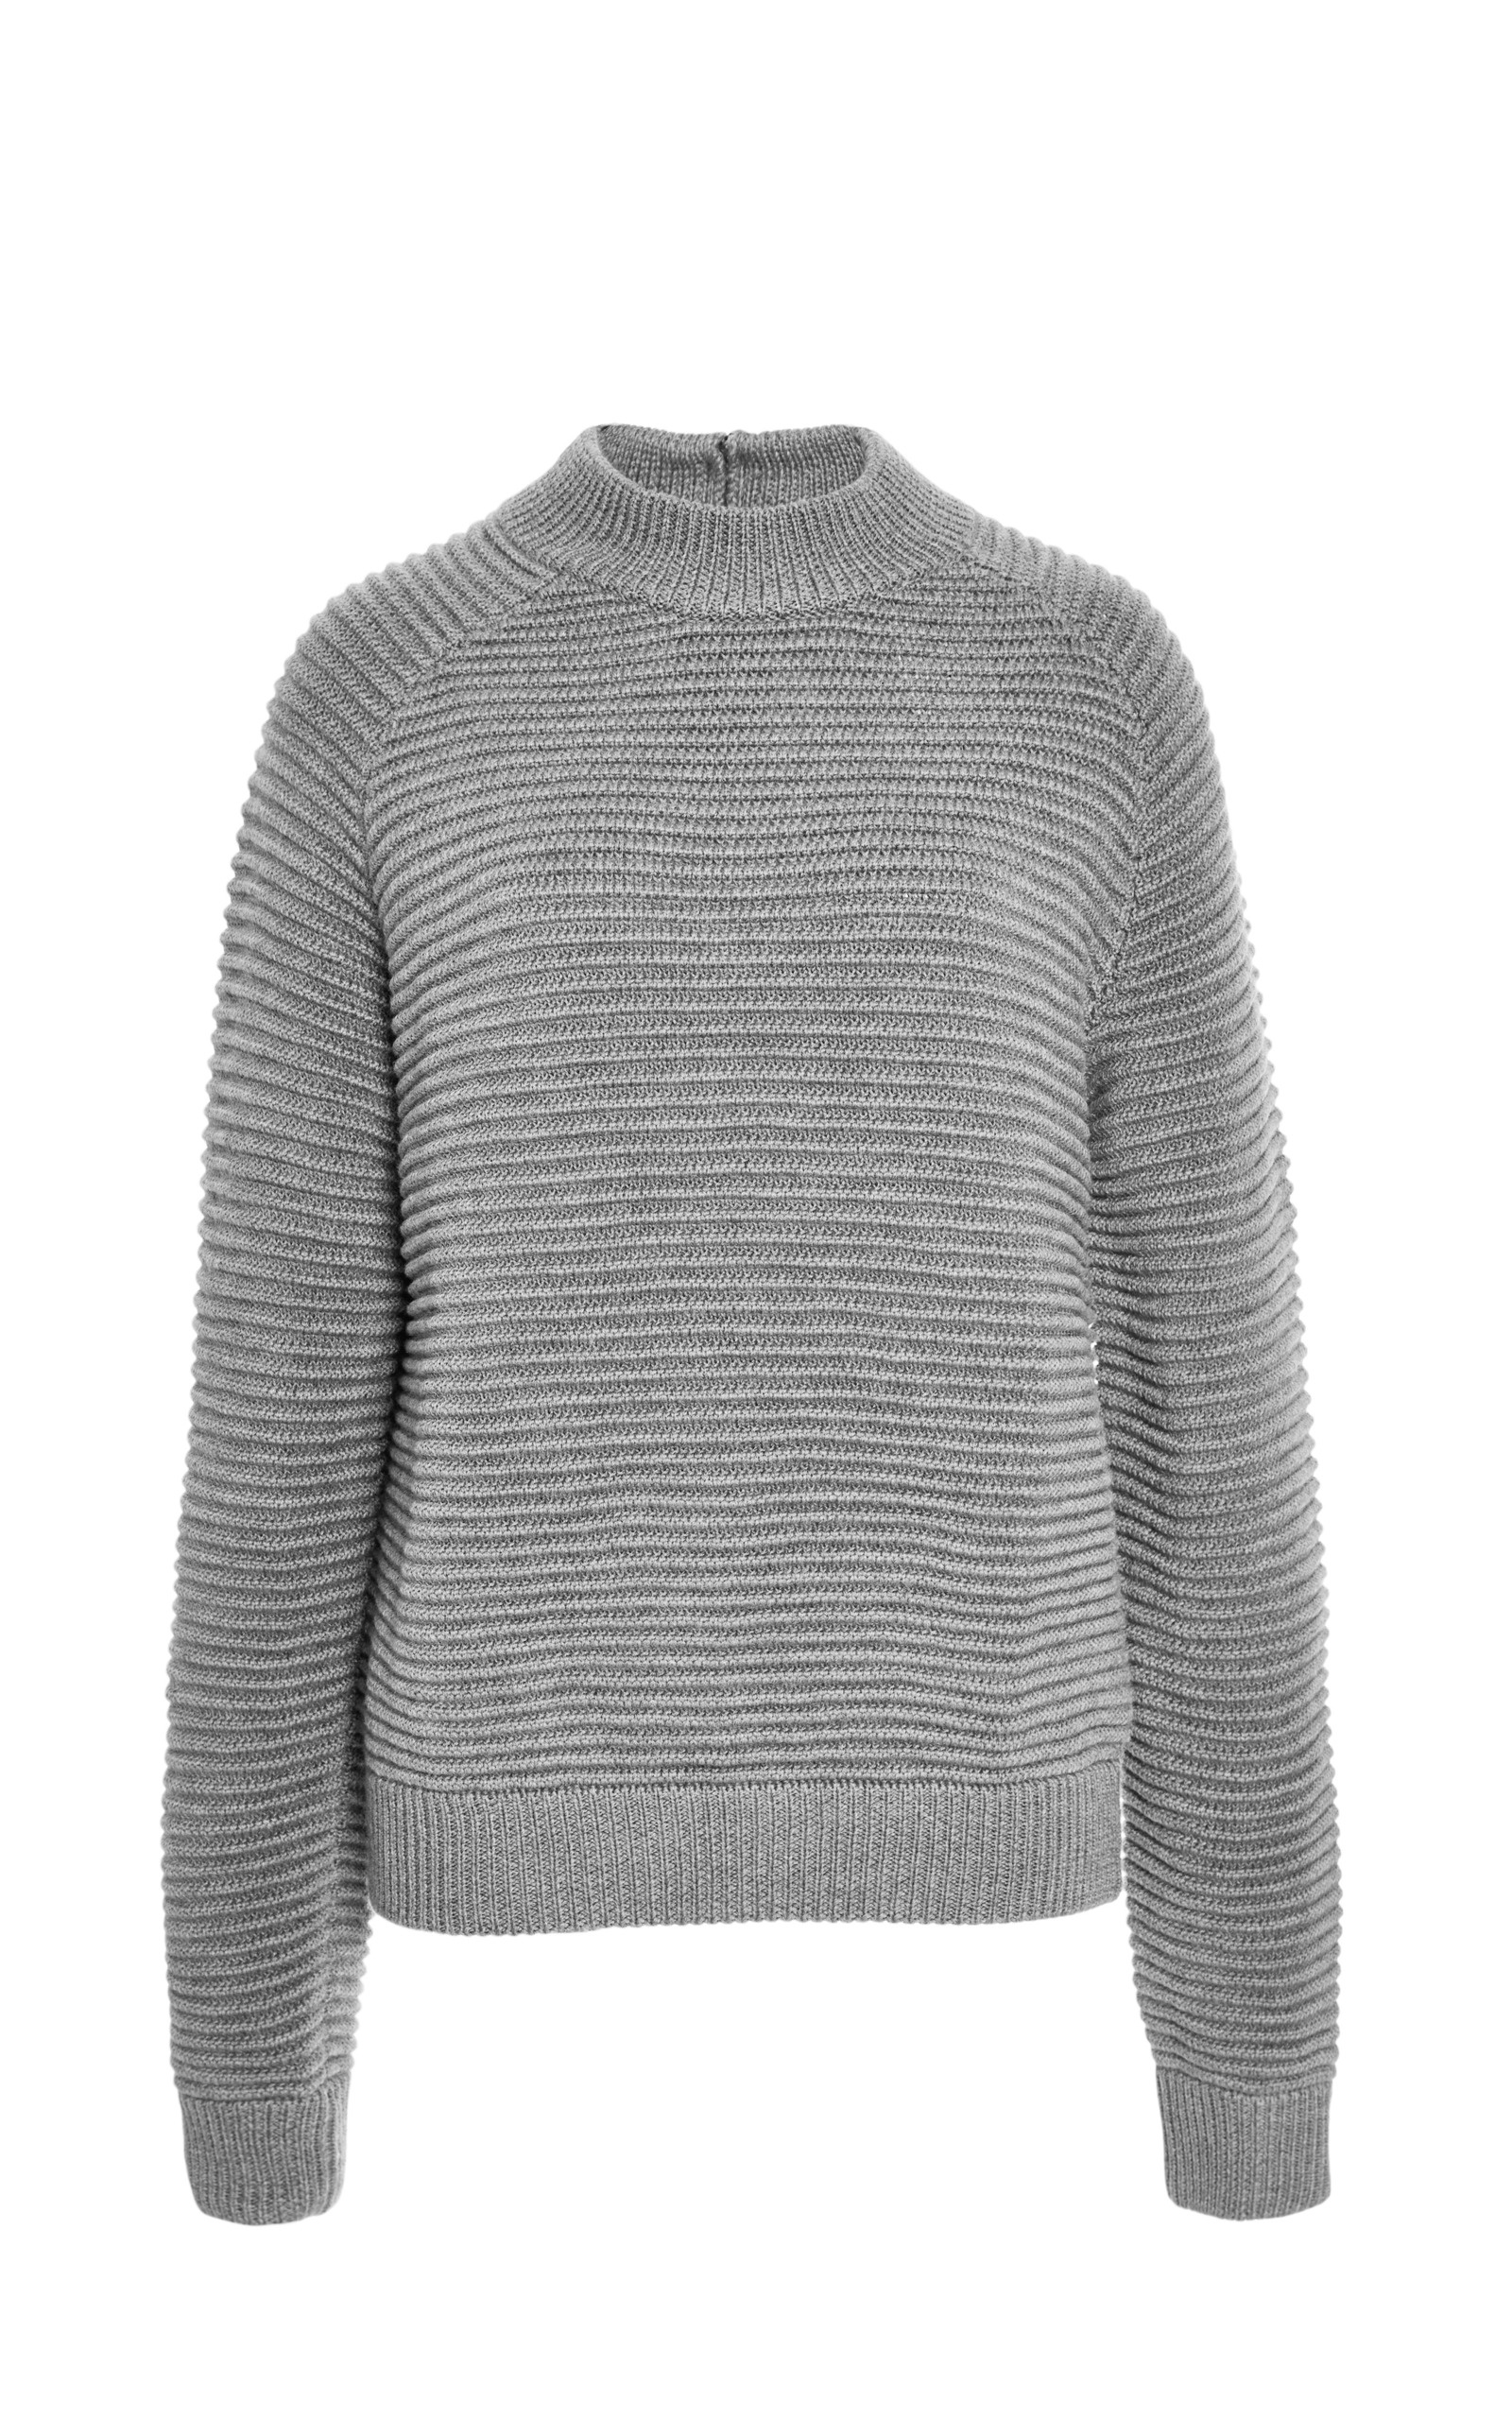 2420b4872c4c CarvenChunky Ribbed Wool Sweater. CLOSE. Loading